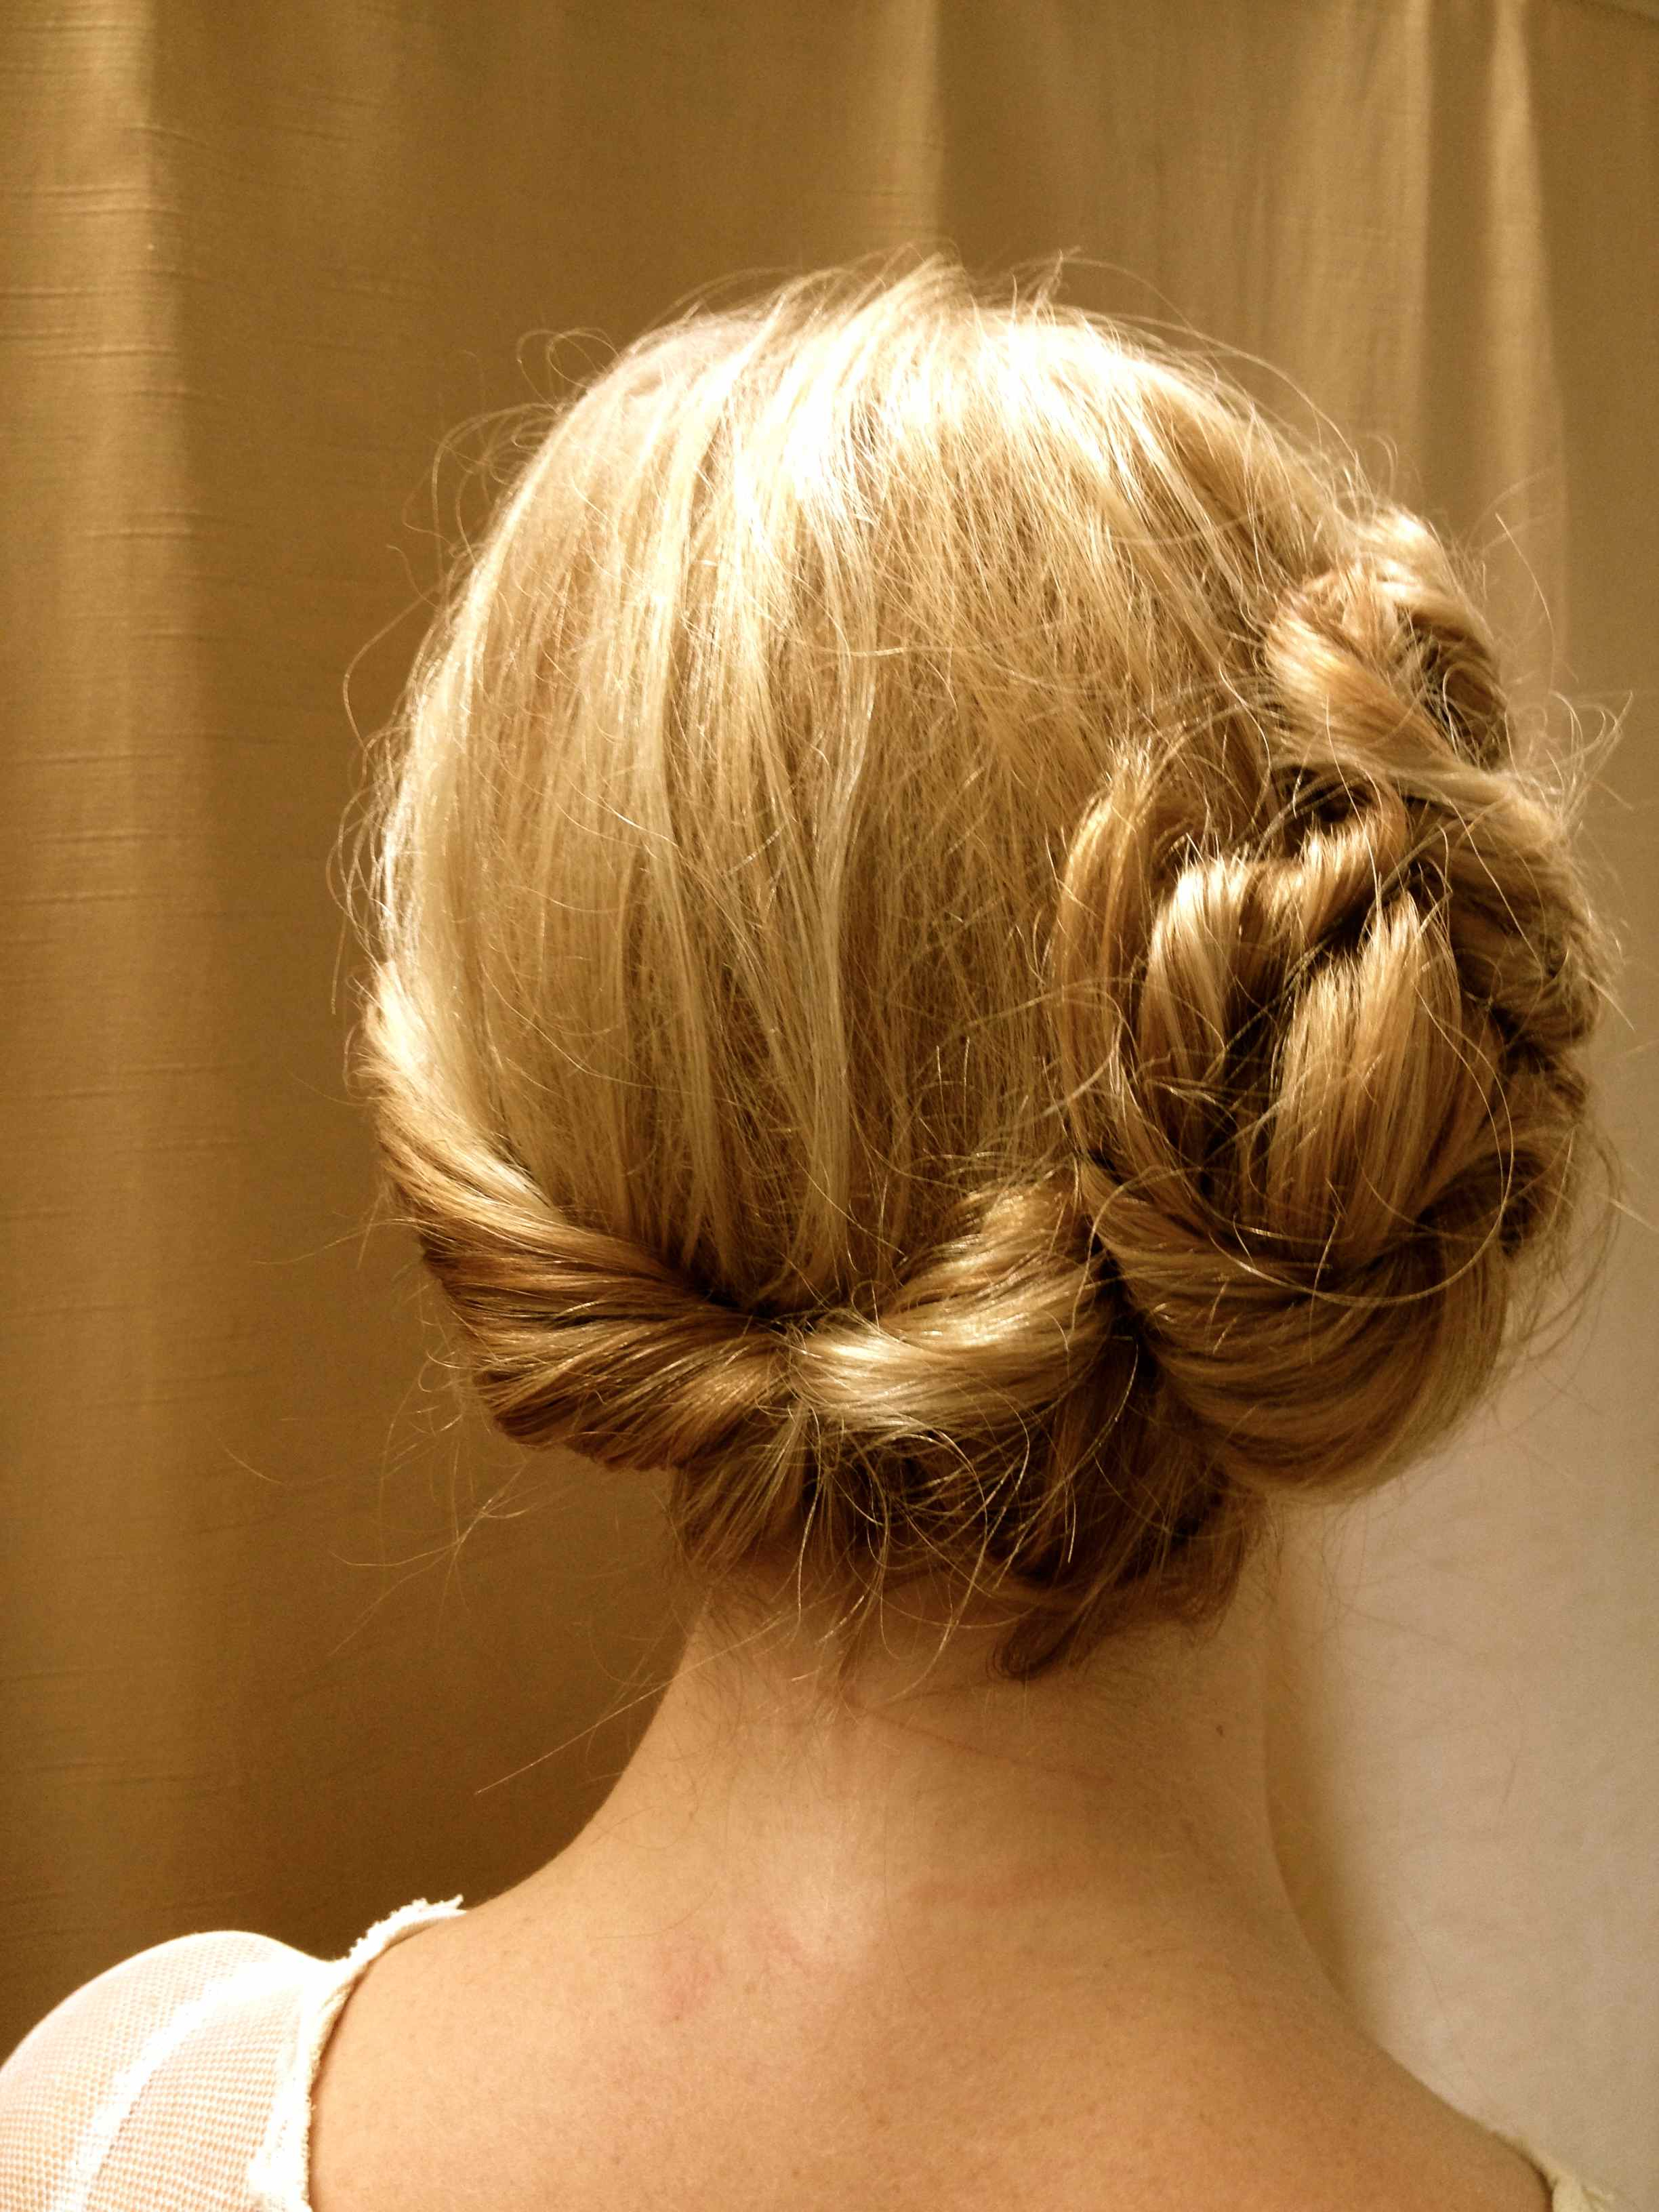 Newest 20S Medium Hairstyles Pertaining To Easy 1920S Hairstyles For Medium Hair – Hairstyles For Women (View 17 of 20)